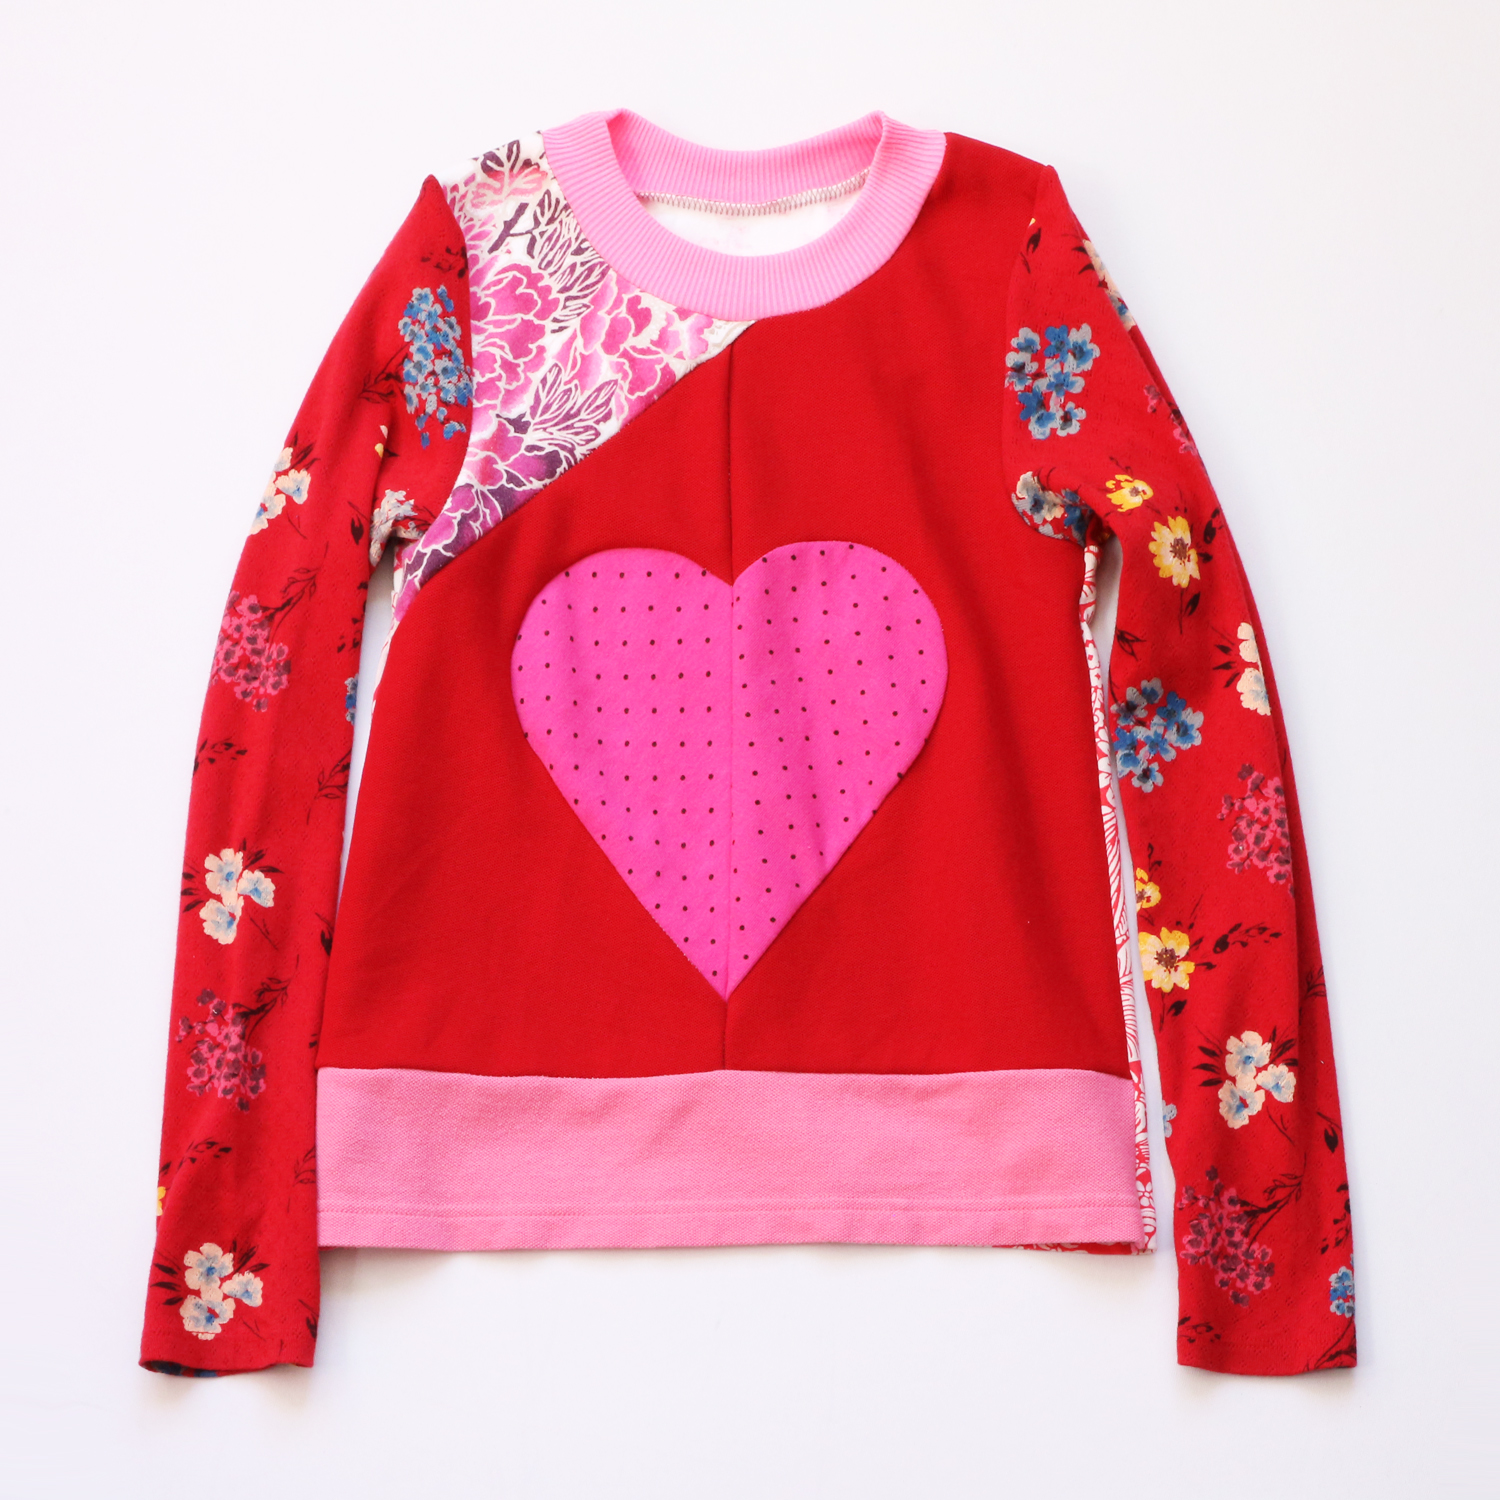 flat 8:10 floral:red:patchwork:heart:ls:top .jpg